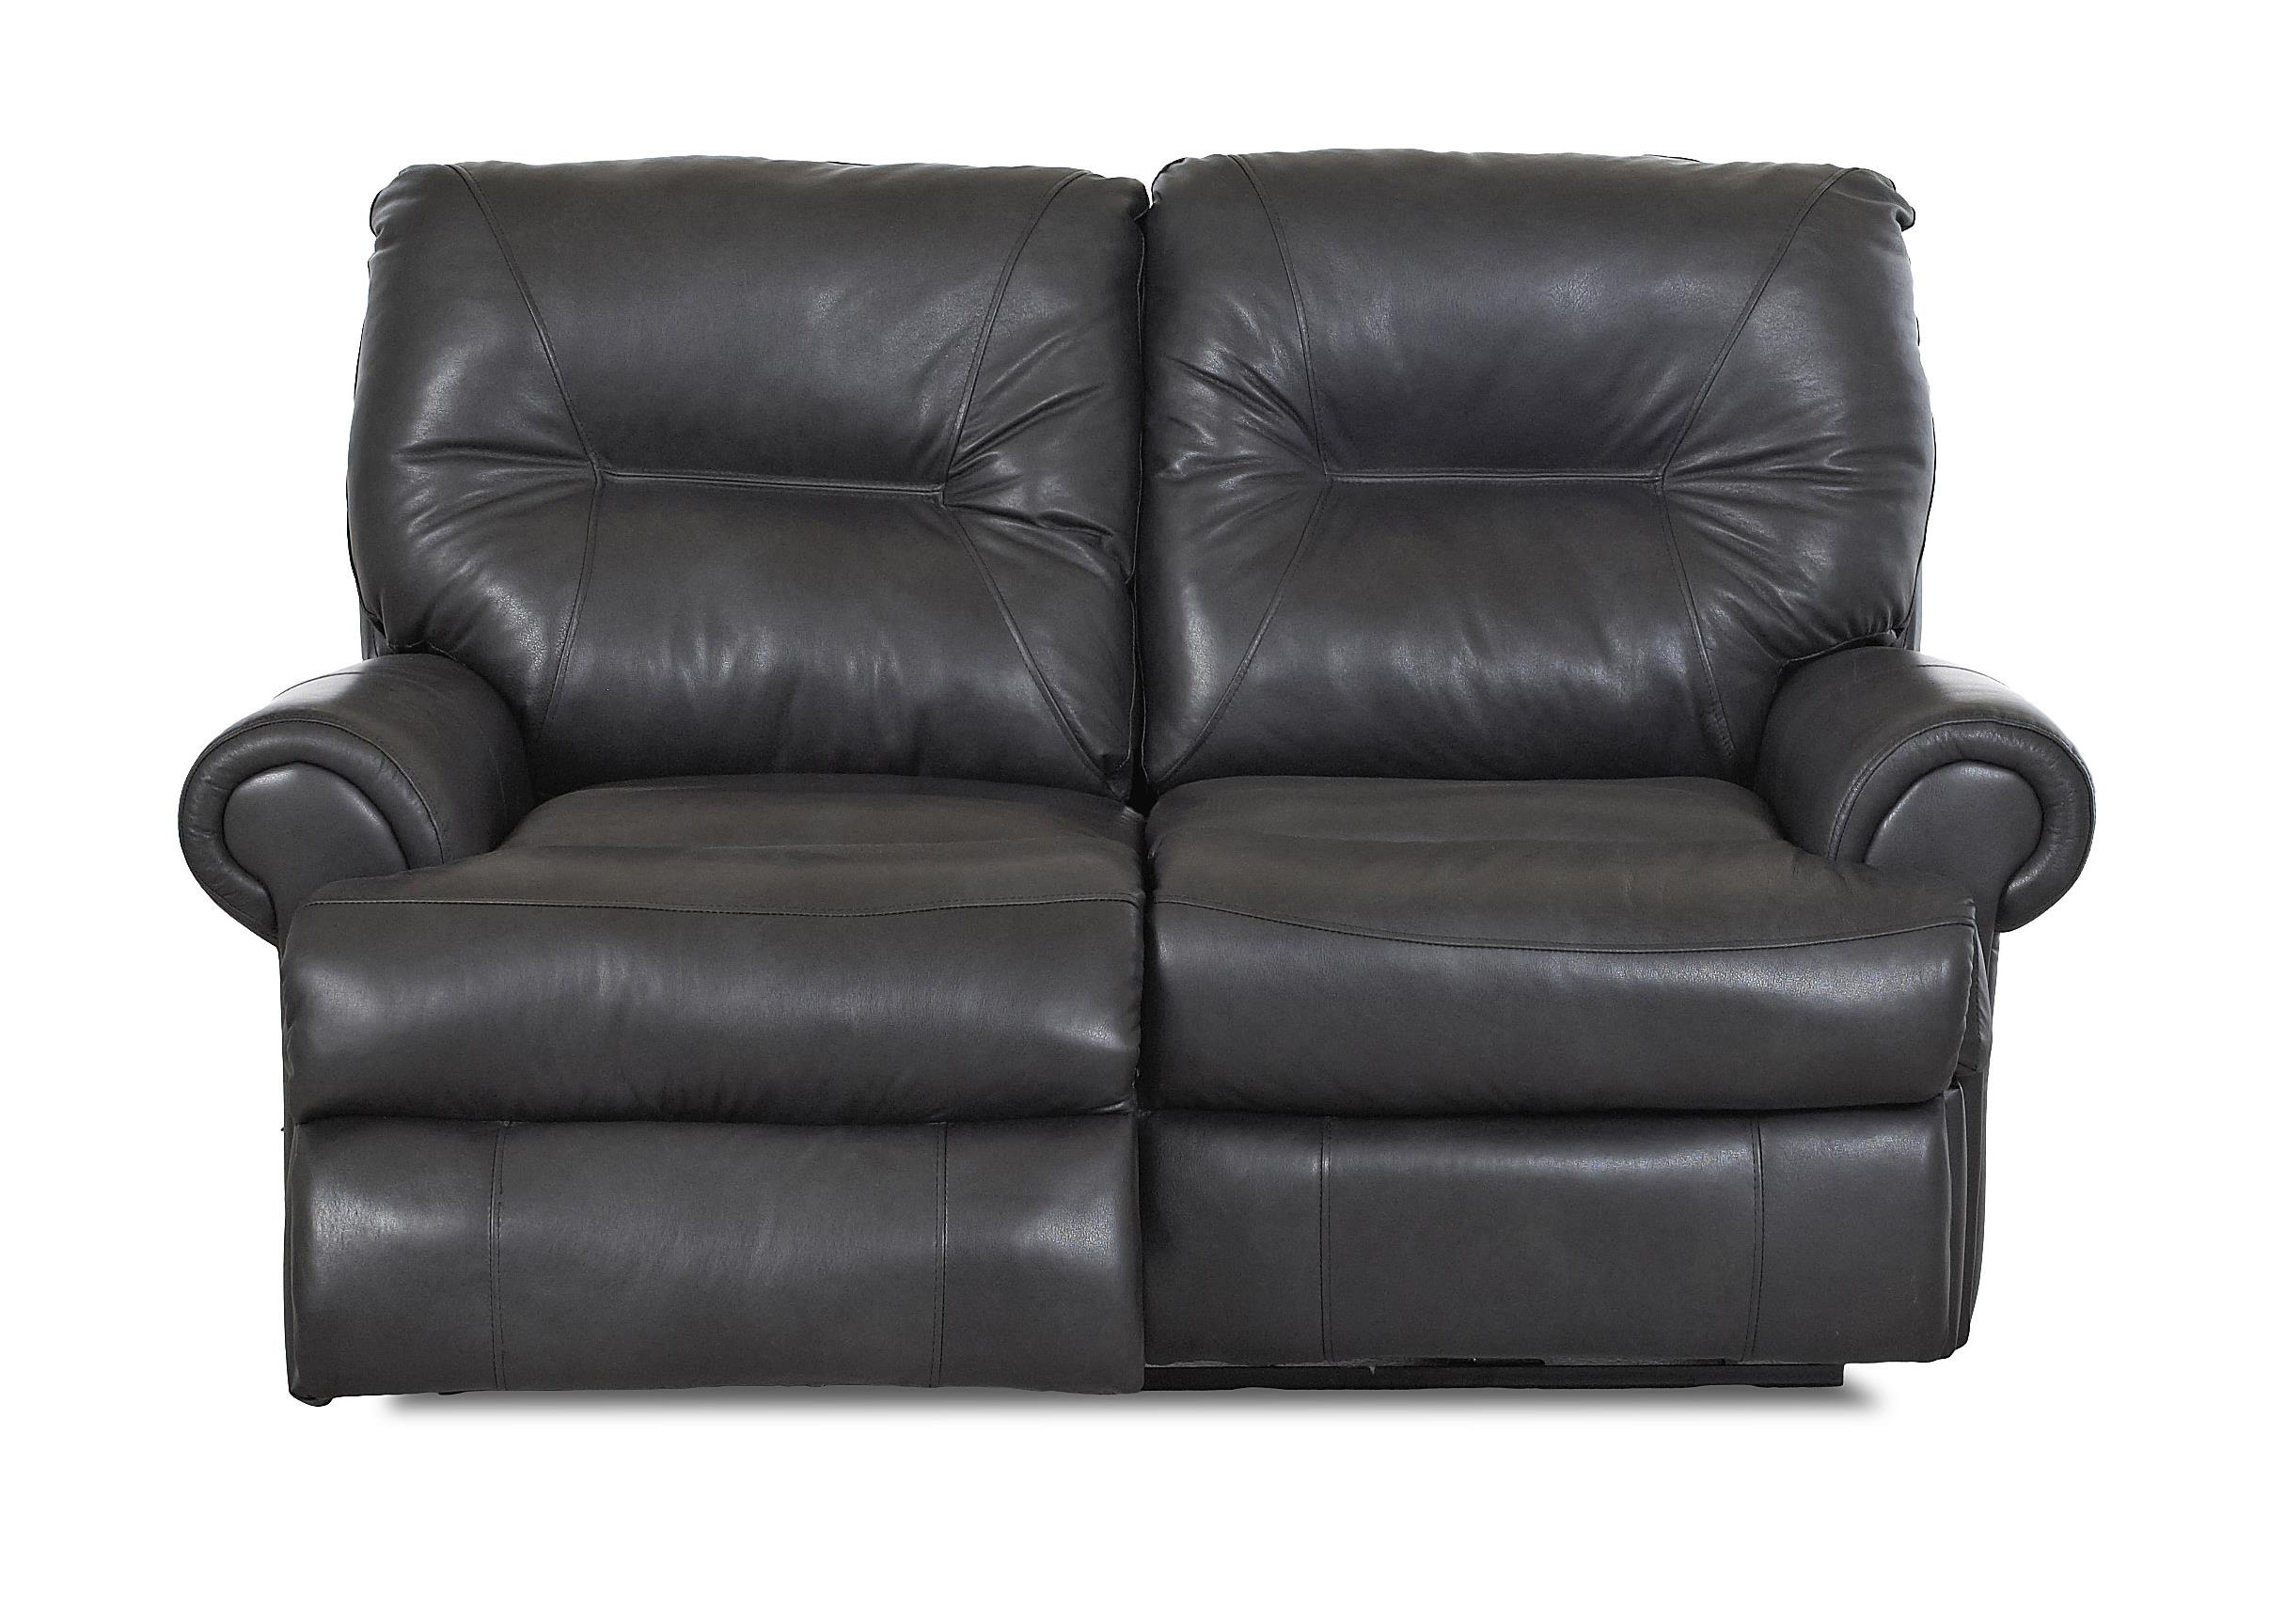 Roadster Traditional Reclining Loveseat By Klaussner Wolf Furniture